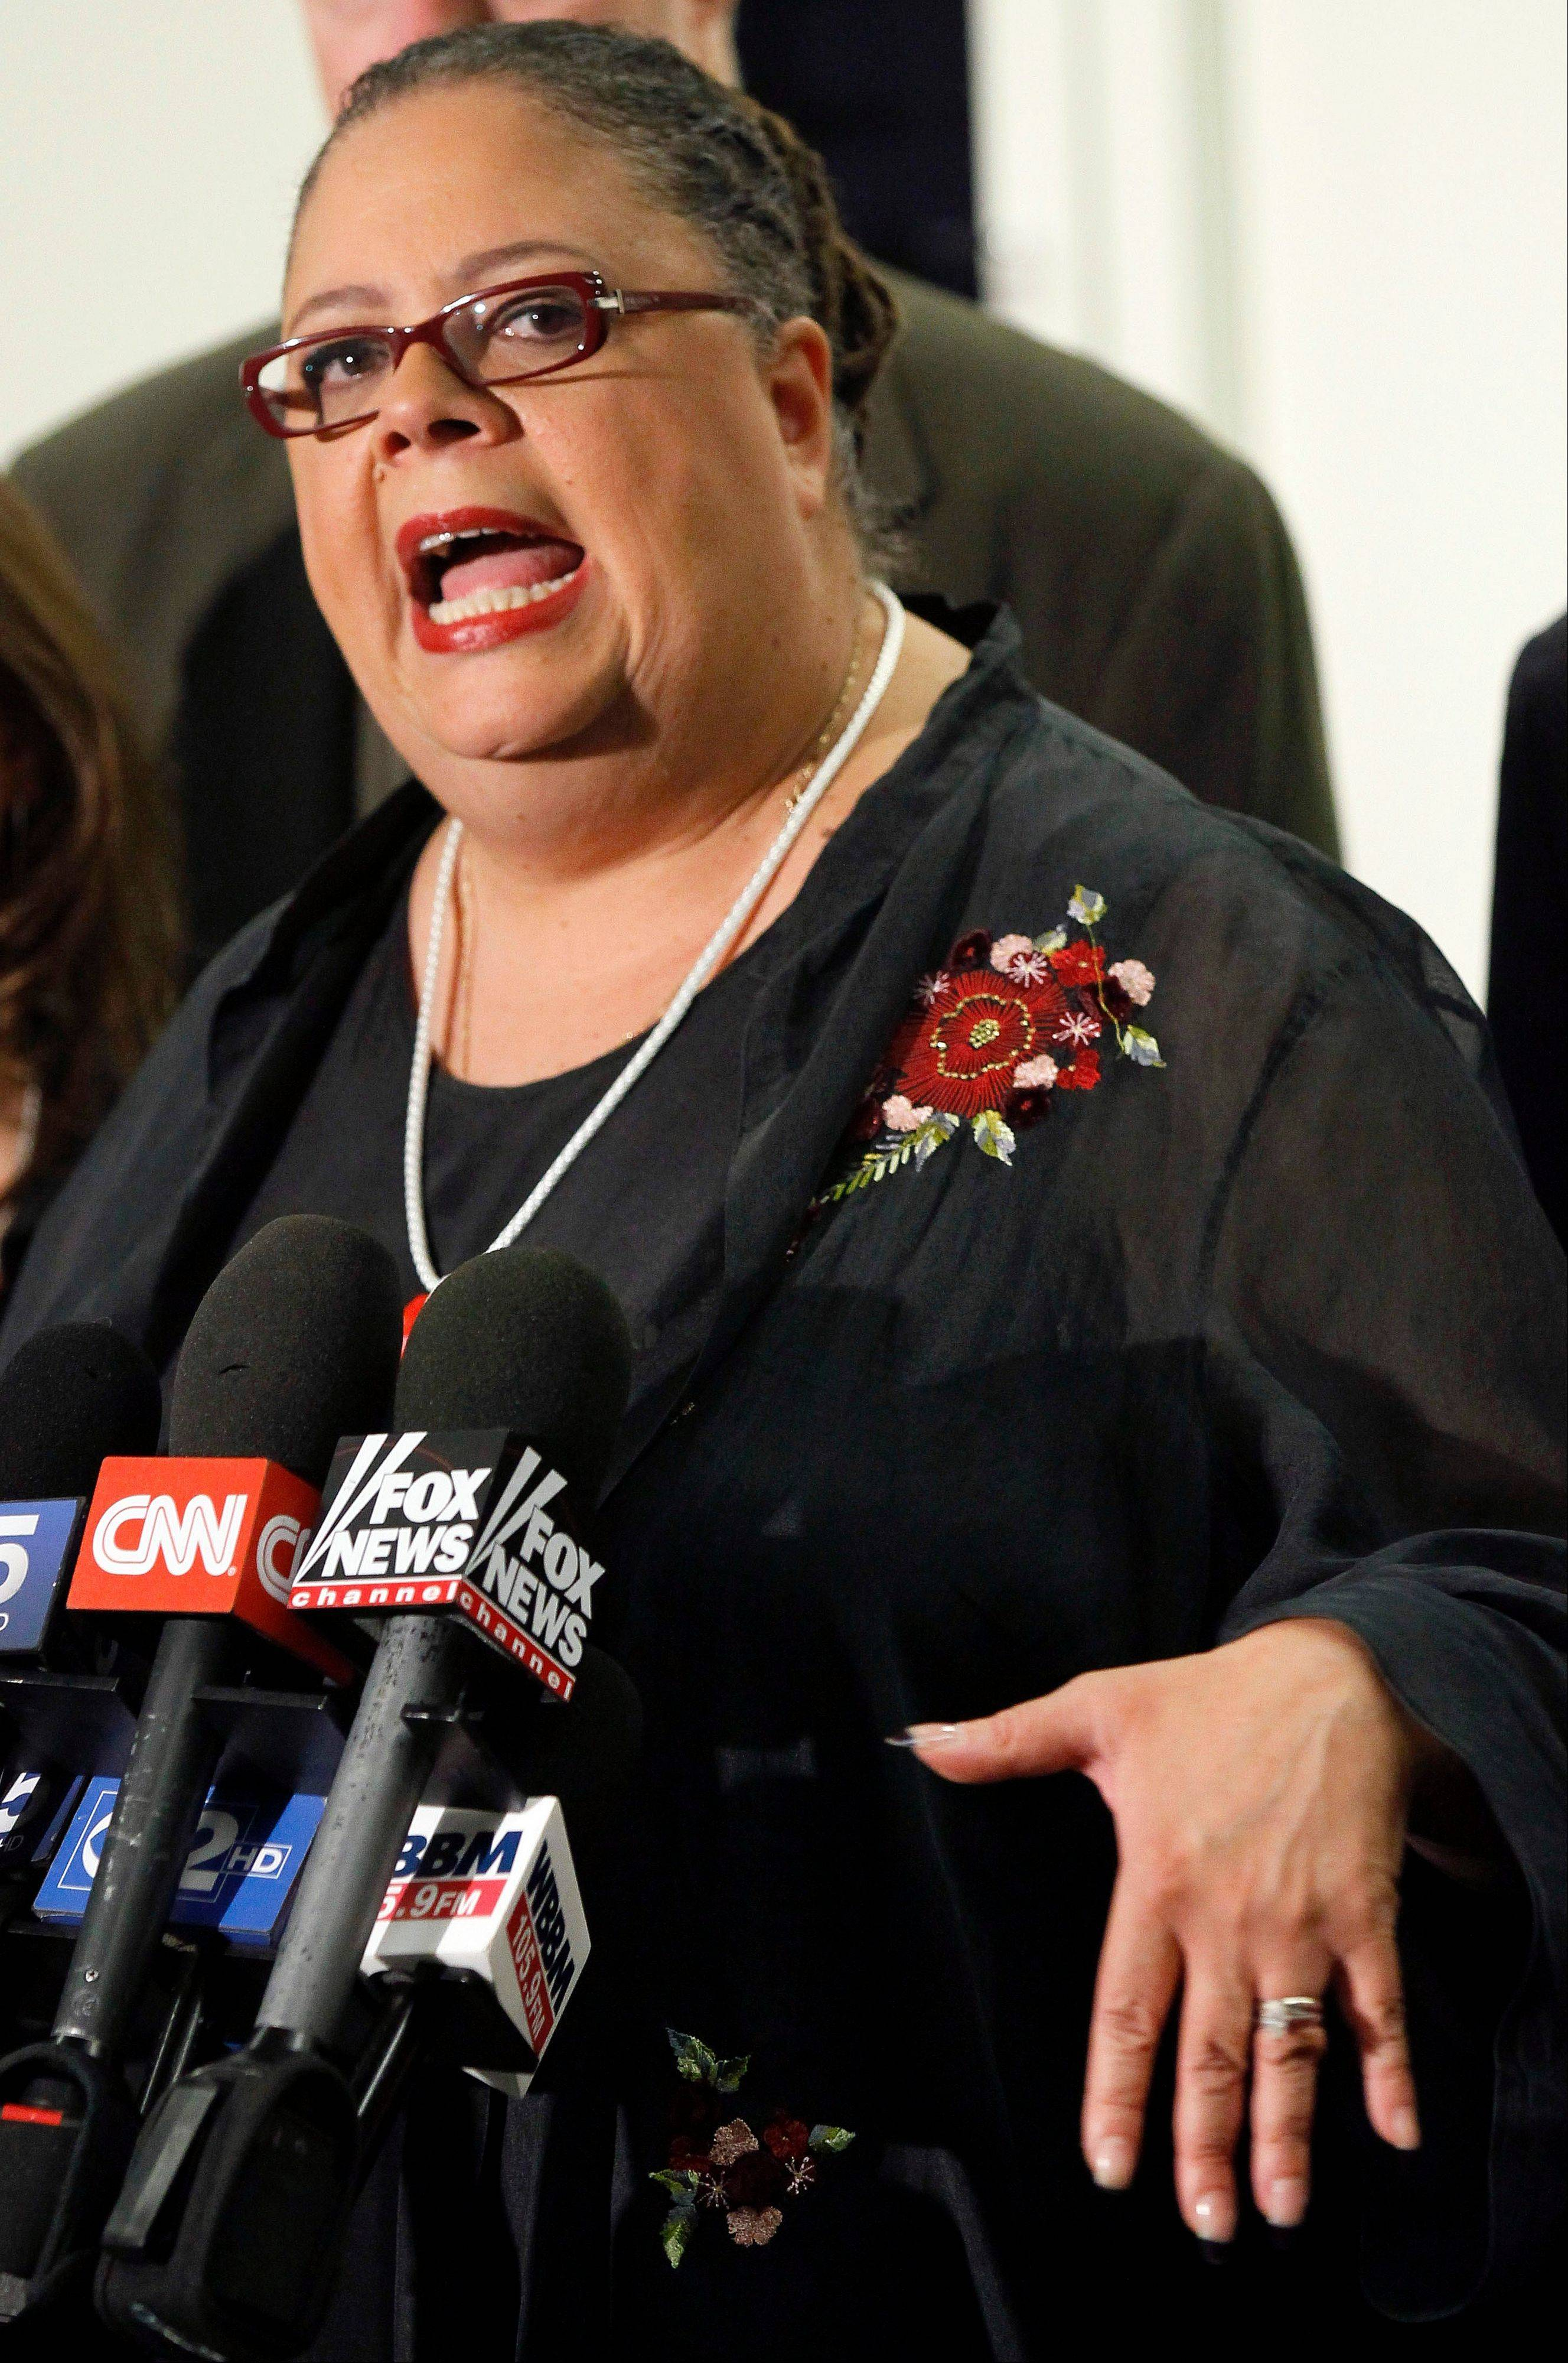 Union President Karen Lewis led Chicago�s teachers on a seven-day strike that kept more than 350,000 students out of school last year.